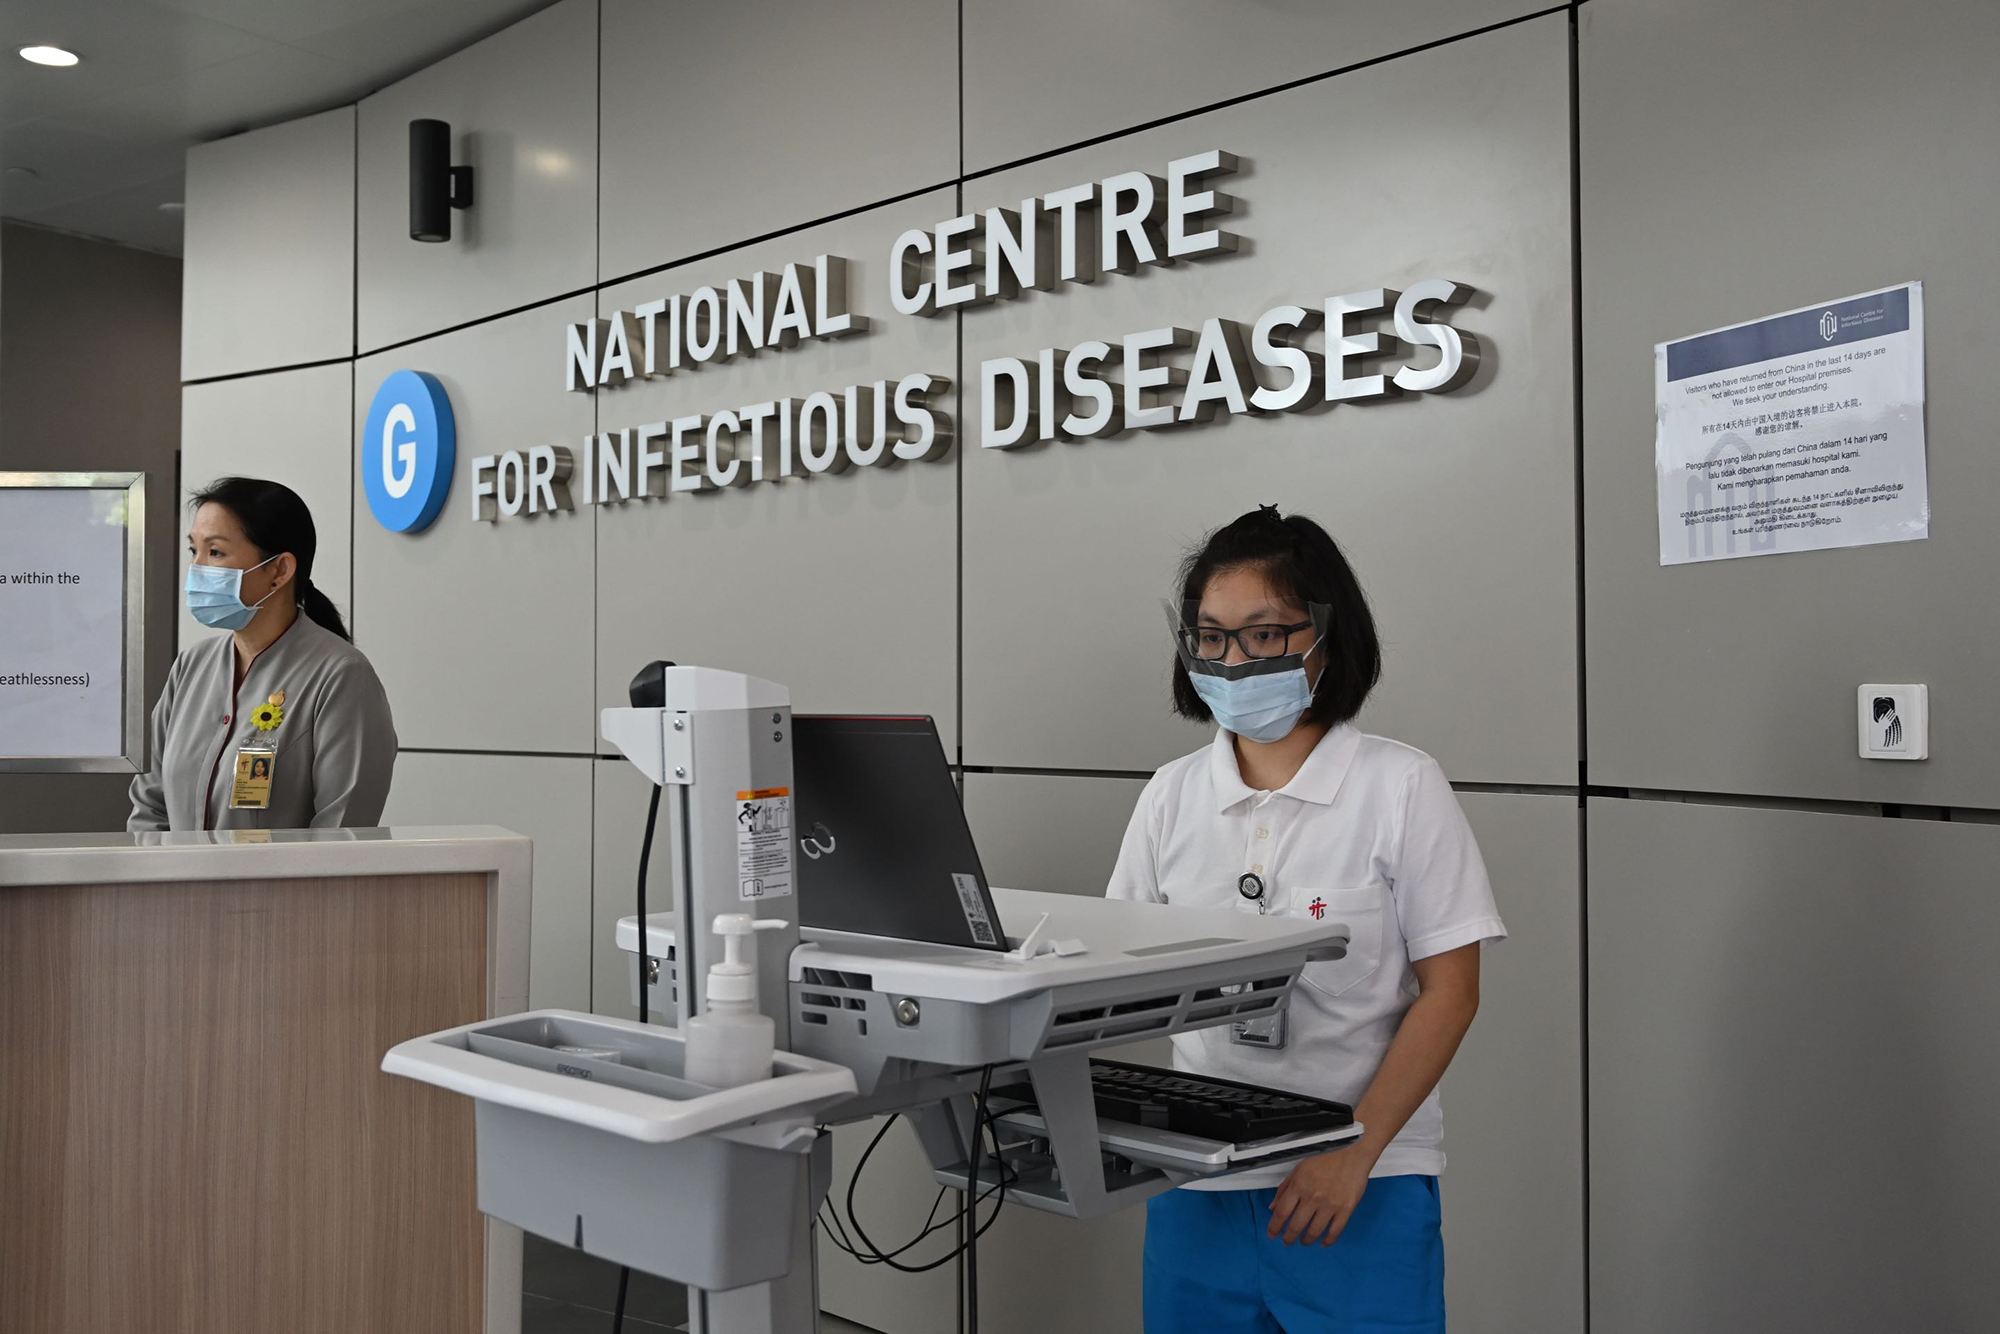 Medical staff at the National Centre for Infectious Diseases building at Tan Tock Seng Hospital in Singapore on January 31.